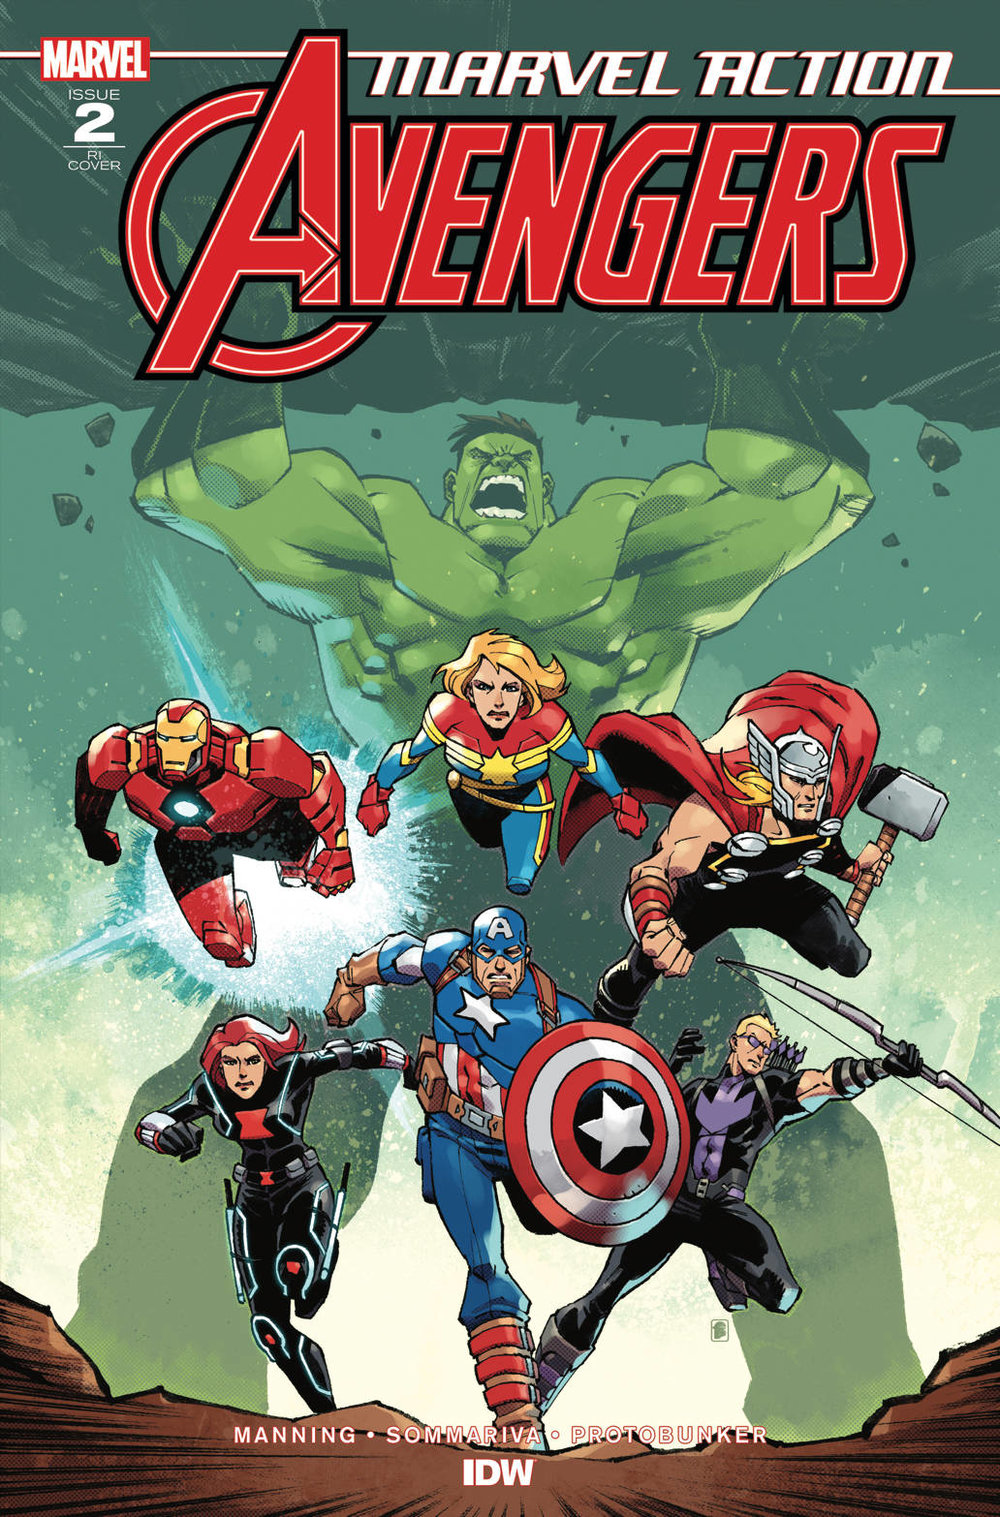 MARVEL ACTION AVENGERS 2 10 COPY INCV DANIEL.jpg